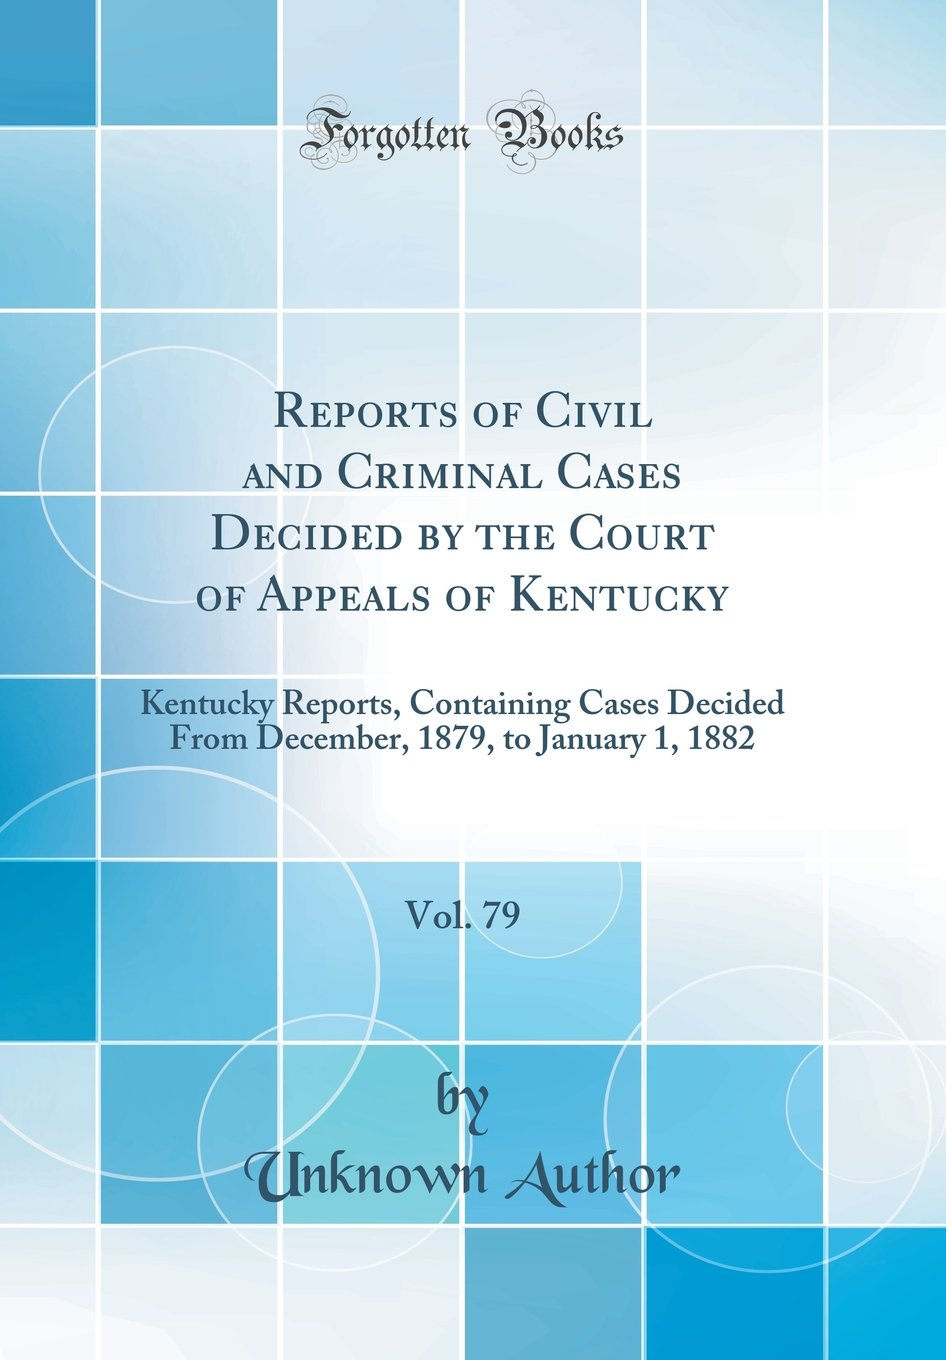 Read Online Reports of Civil and Criminal Cases Decided by the Court of Appeals of Kentucky, Vol. 79: Kentucky Reports, Containing Cases Decided from December, 1879, to January 1, 1882 (Classic Reprint) PDF ePub ebook